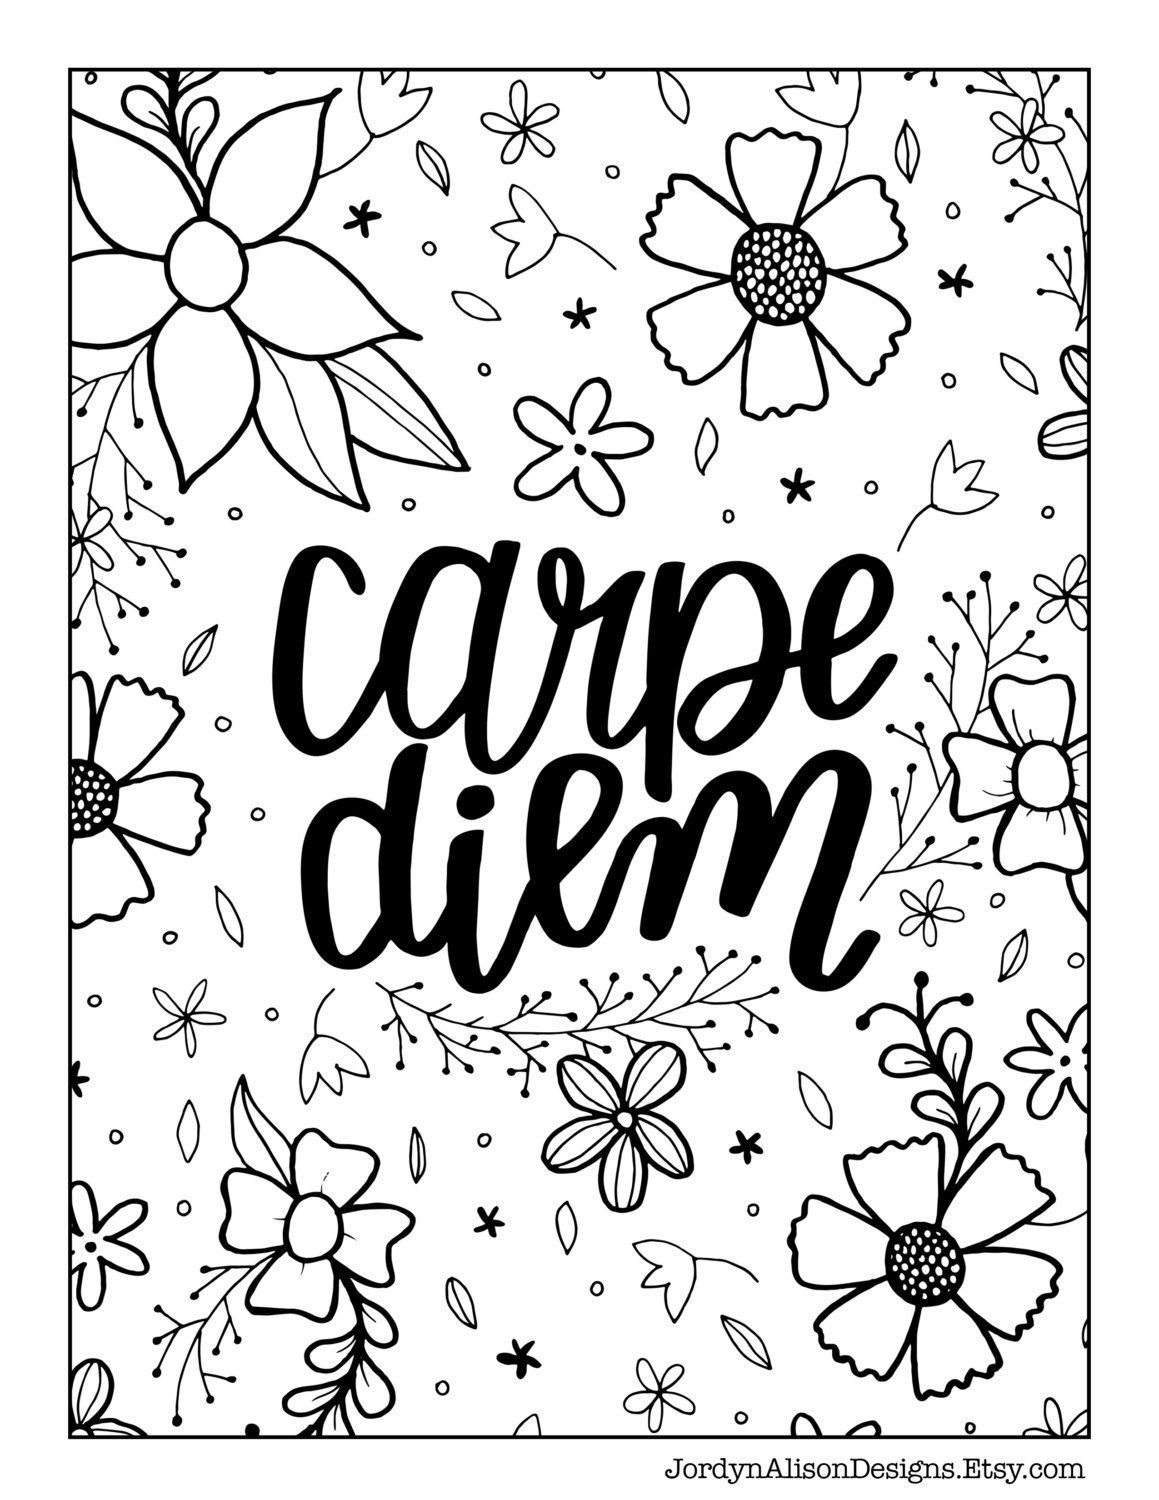 Coloring quotes printables - Carpe Diem Seize The Day Adult Coloring Page Zentangle